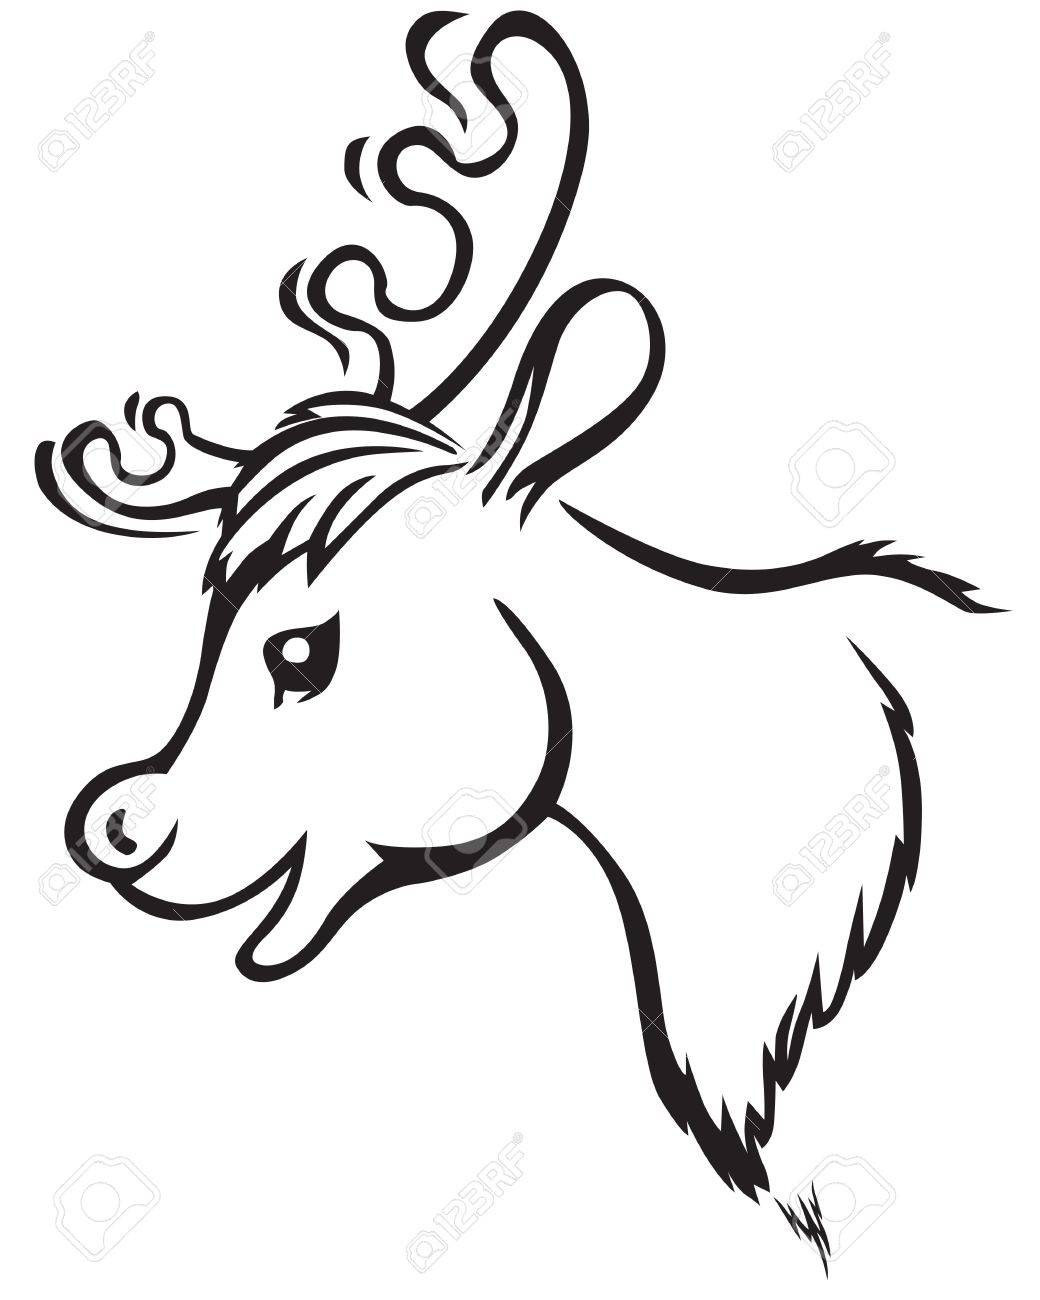 1040x1300 Contour Image Of Cartoon Muzzle Reindeer Royalty Free Cliparts